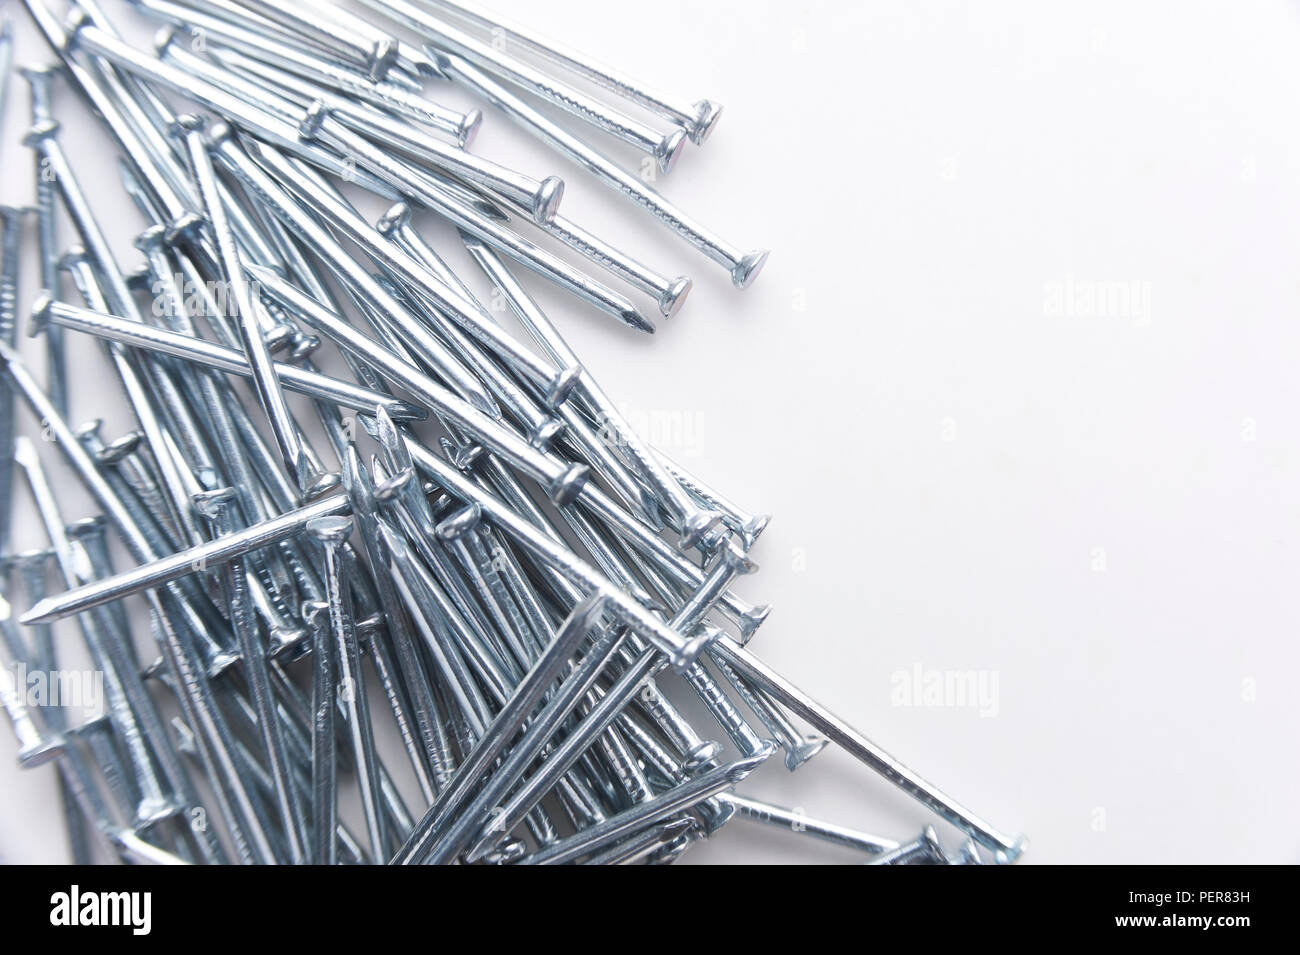 Steel nails on a white background - Stock Image